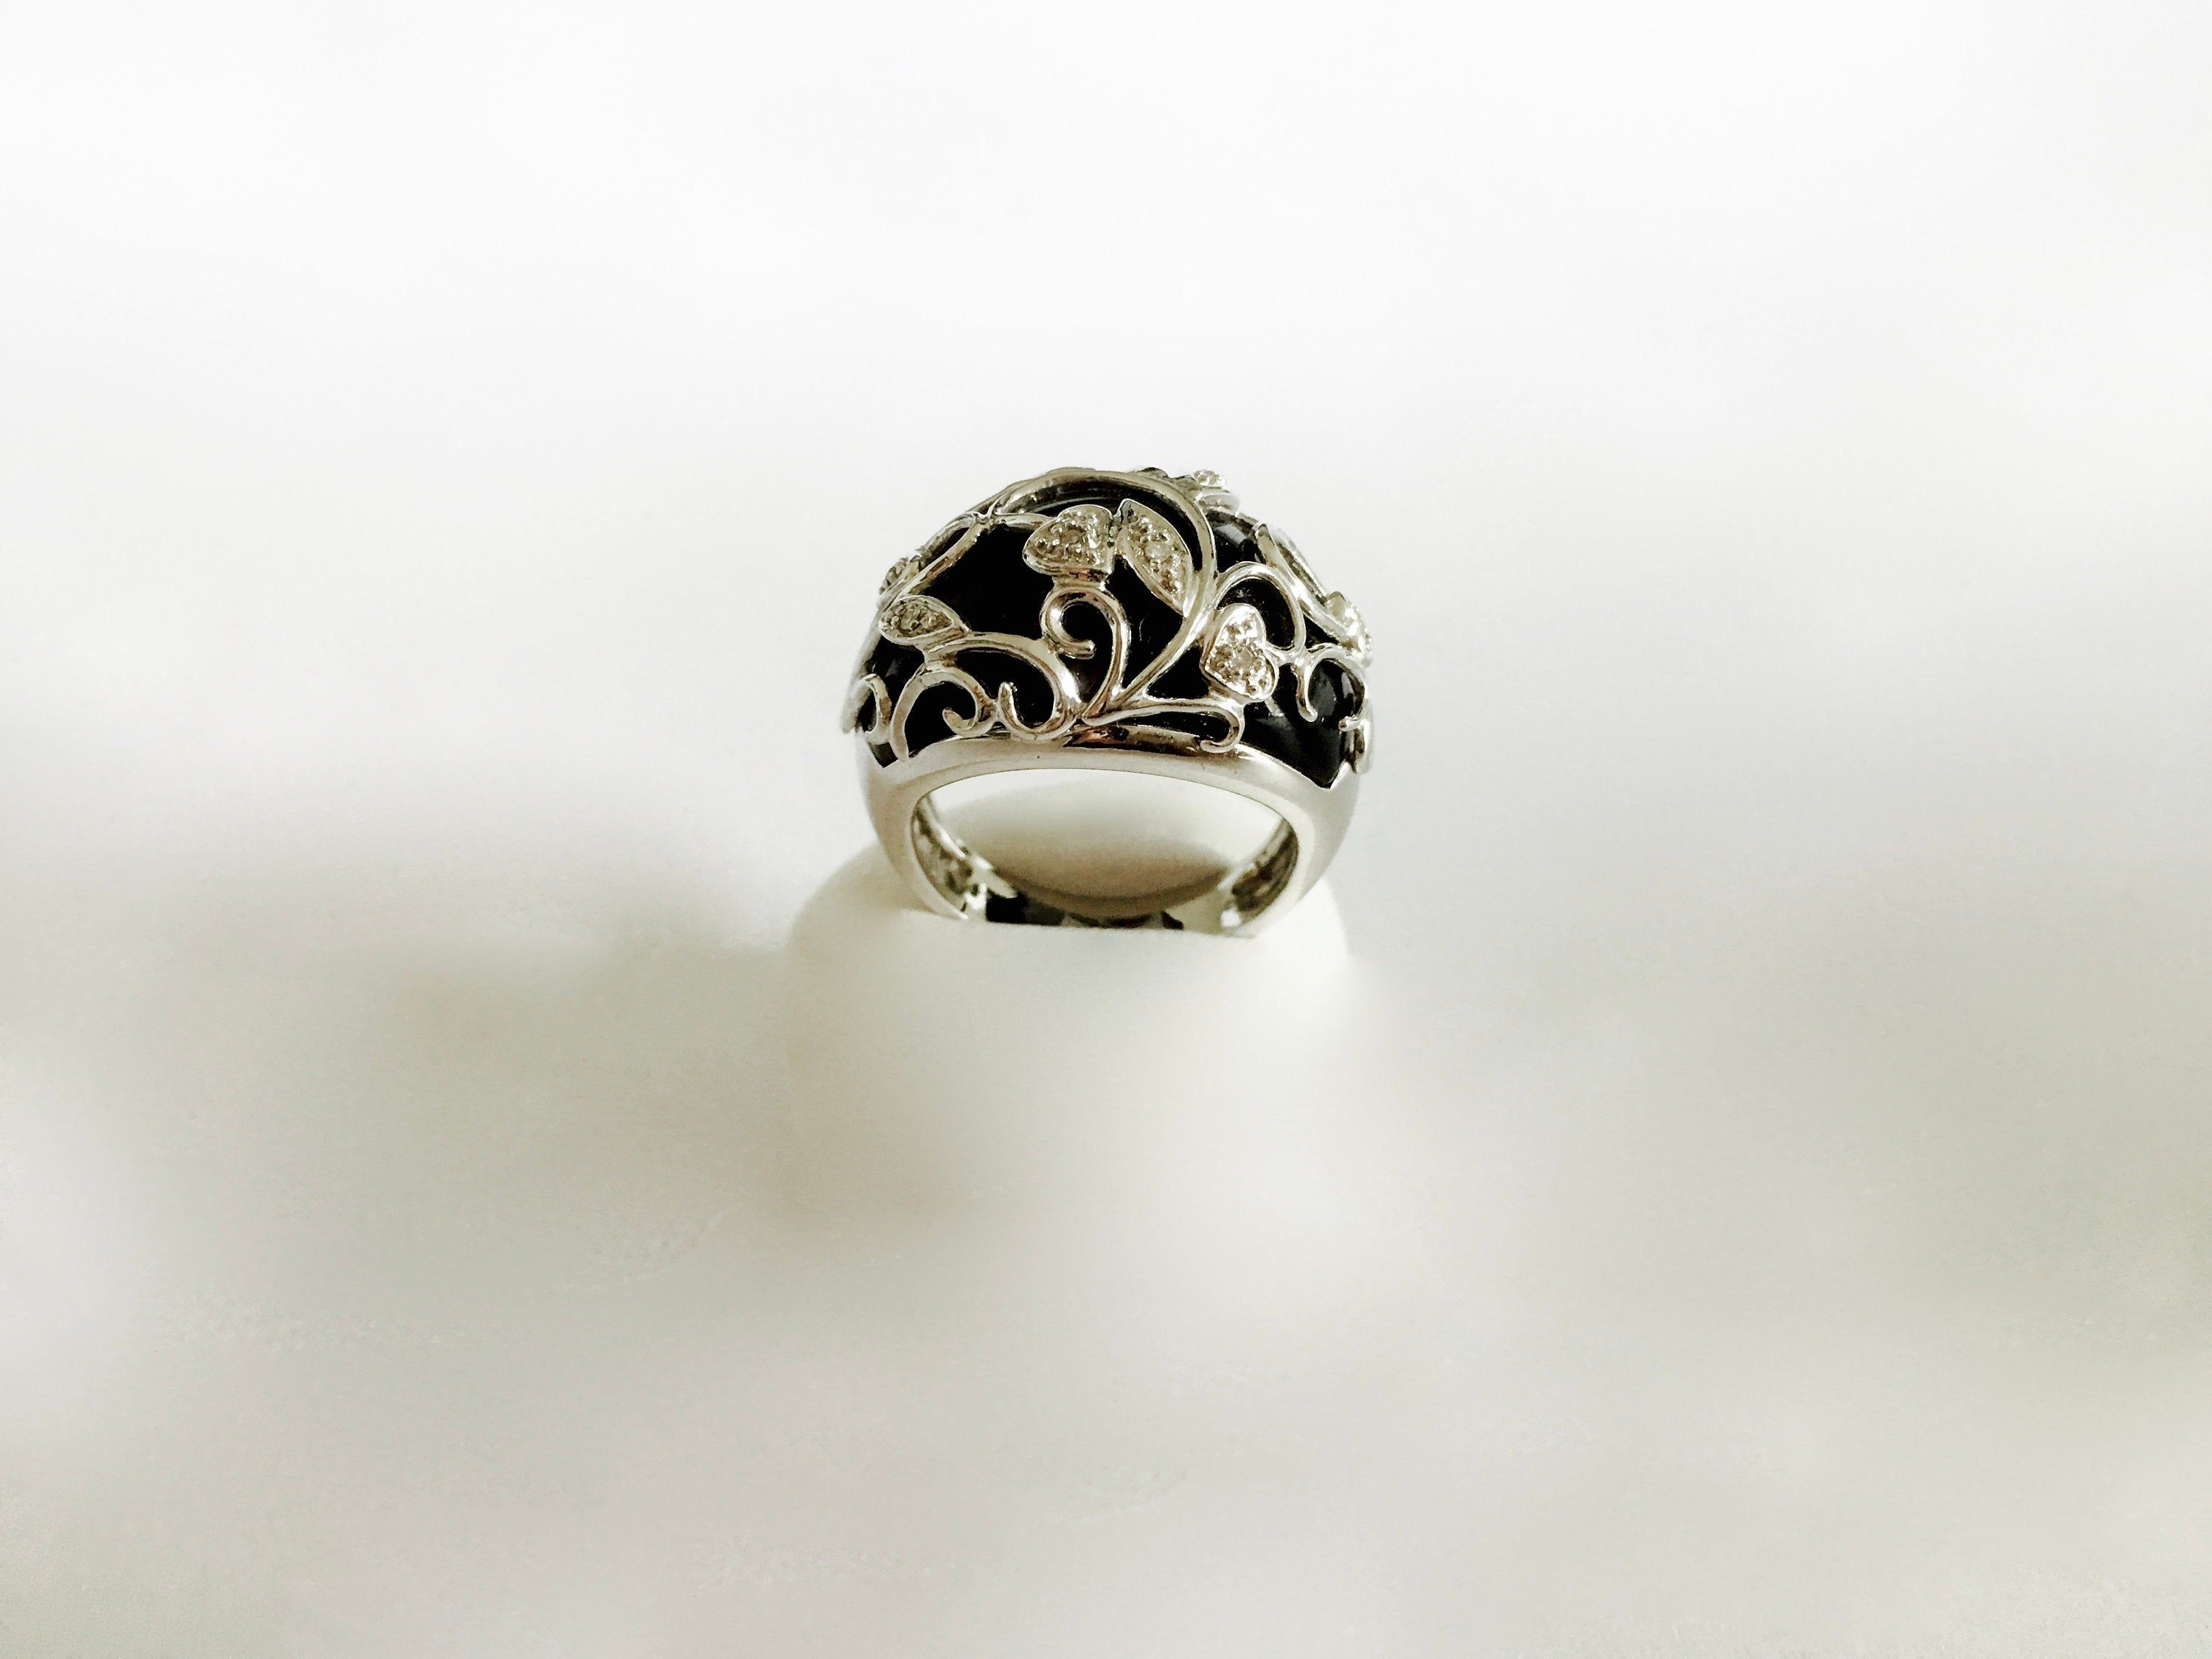 New 925 sterling silver ladies small celtic ring set with a Black Onyx cabochon